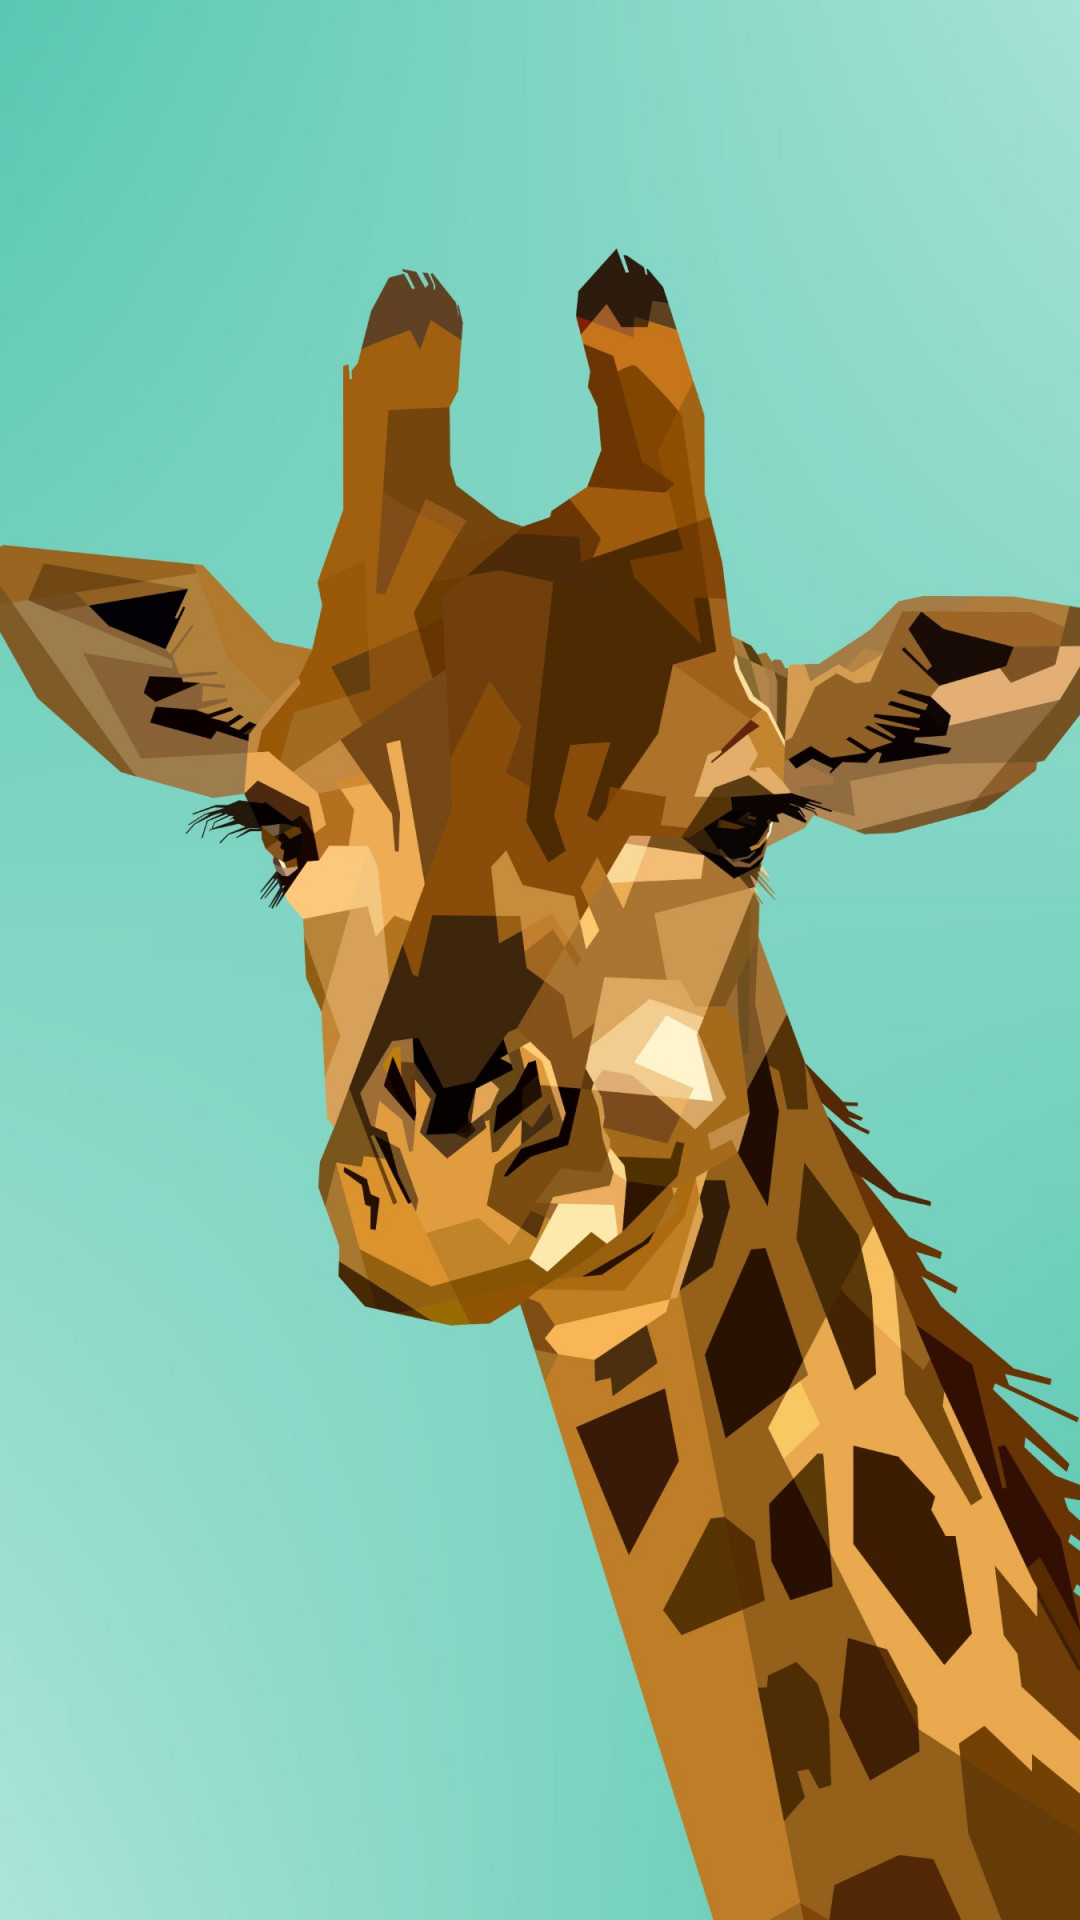 Digital drawing of a giraffe | 1080x1920 wallpaper